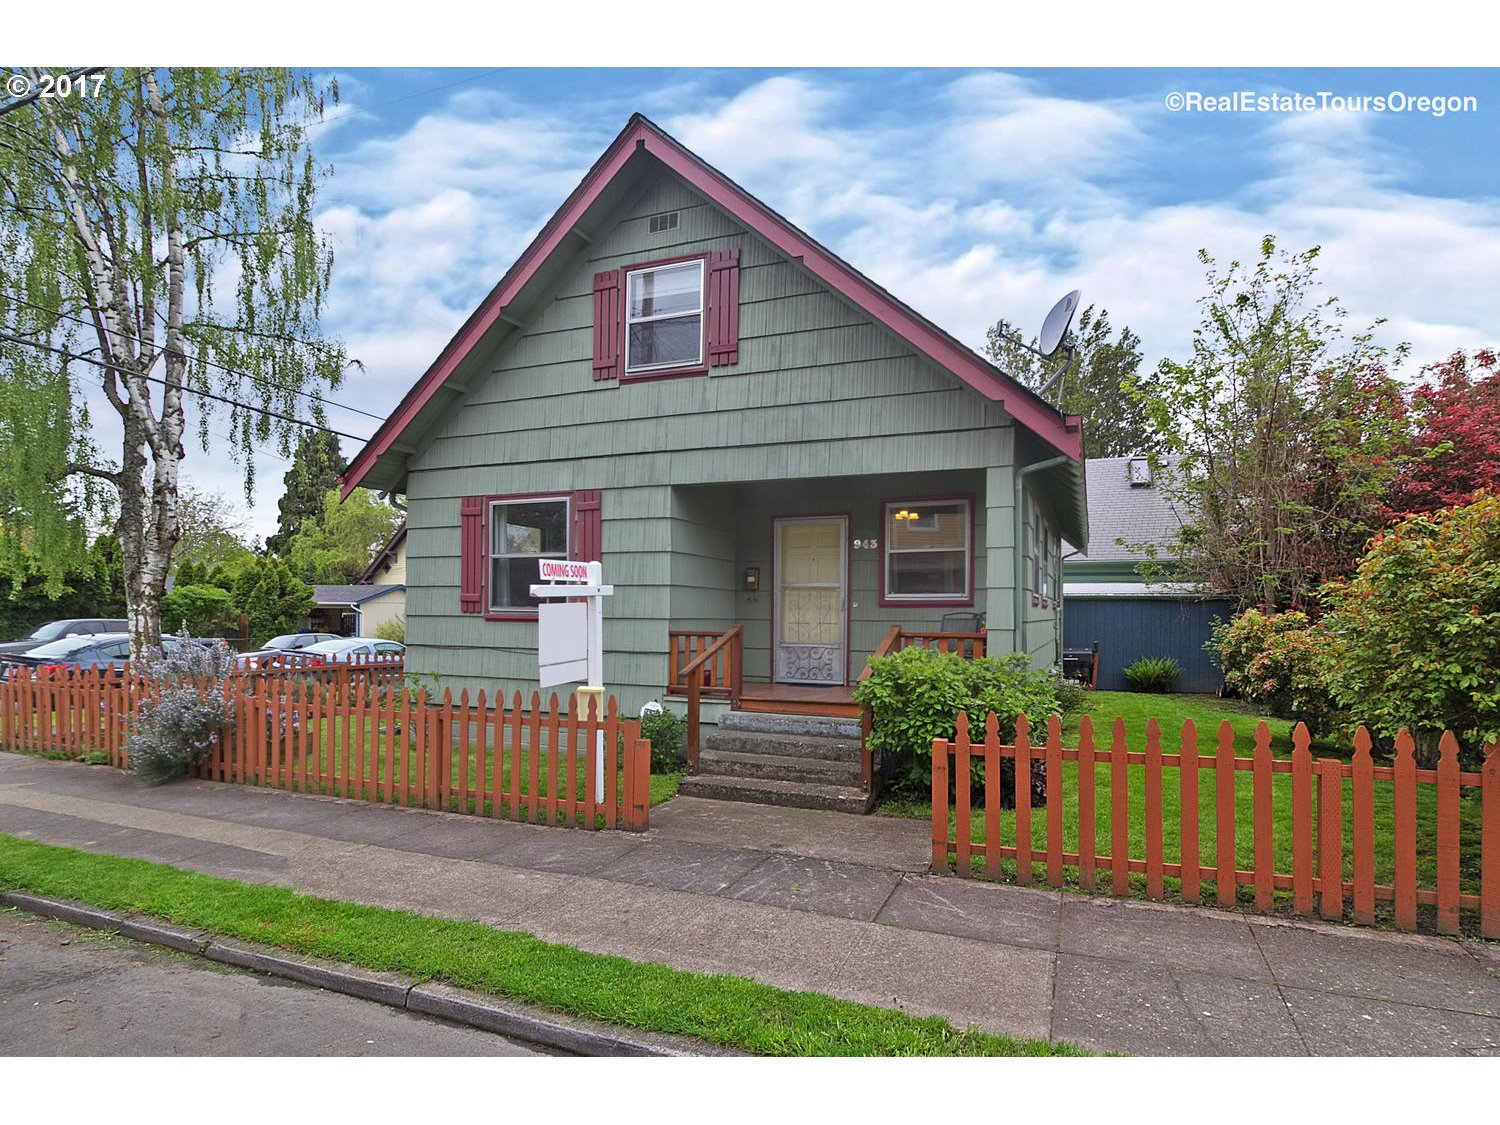 943 SE 45TH AVE, Portland, OR 97215